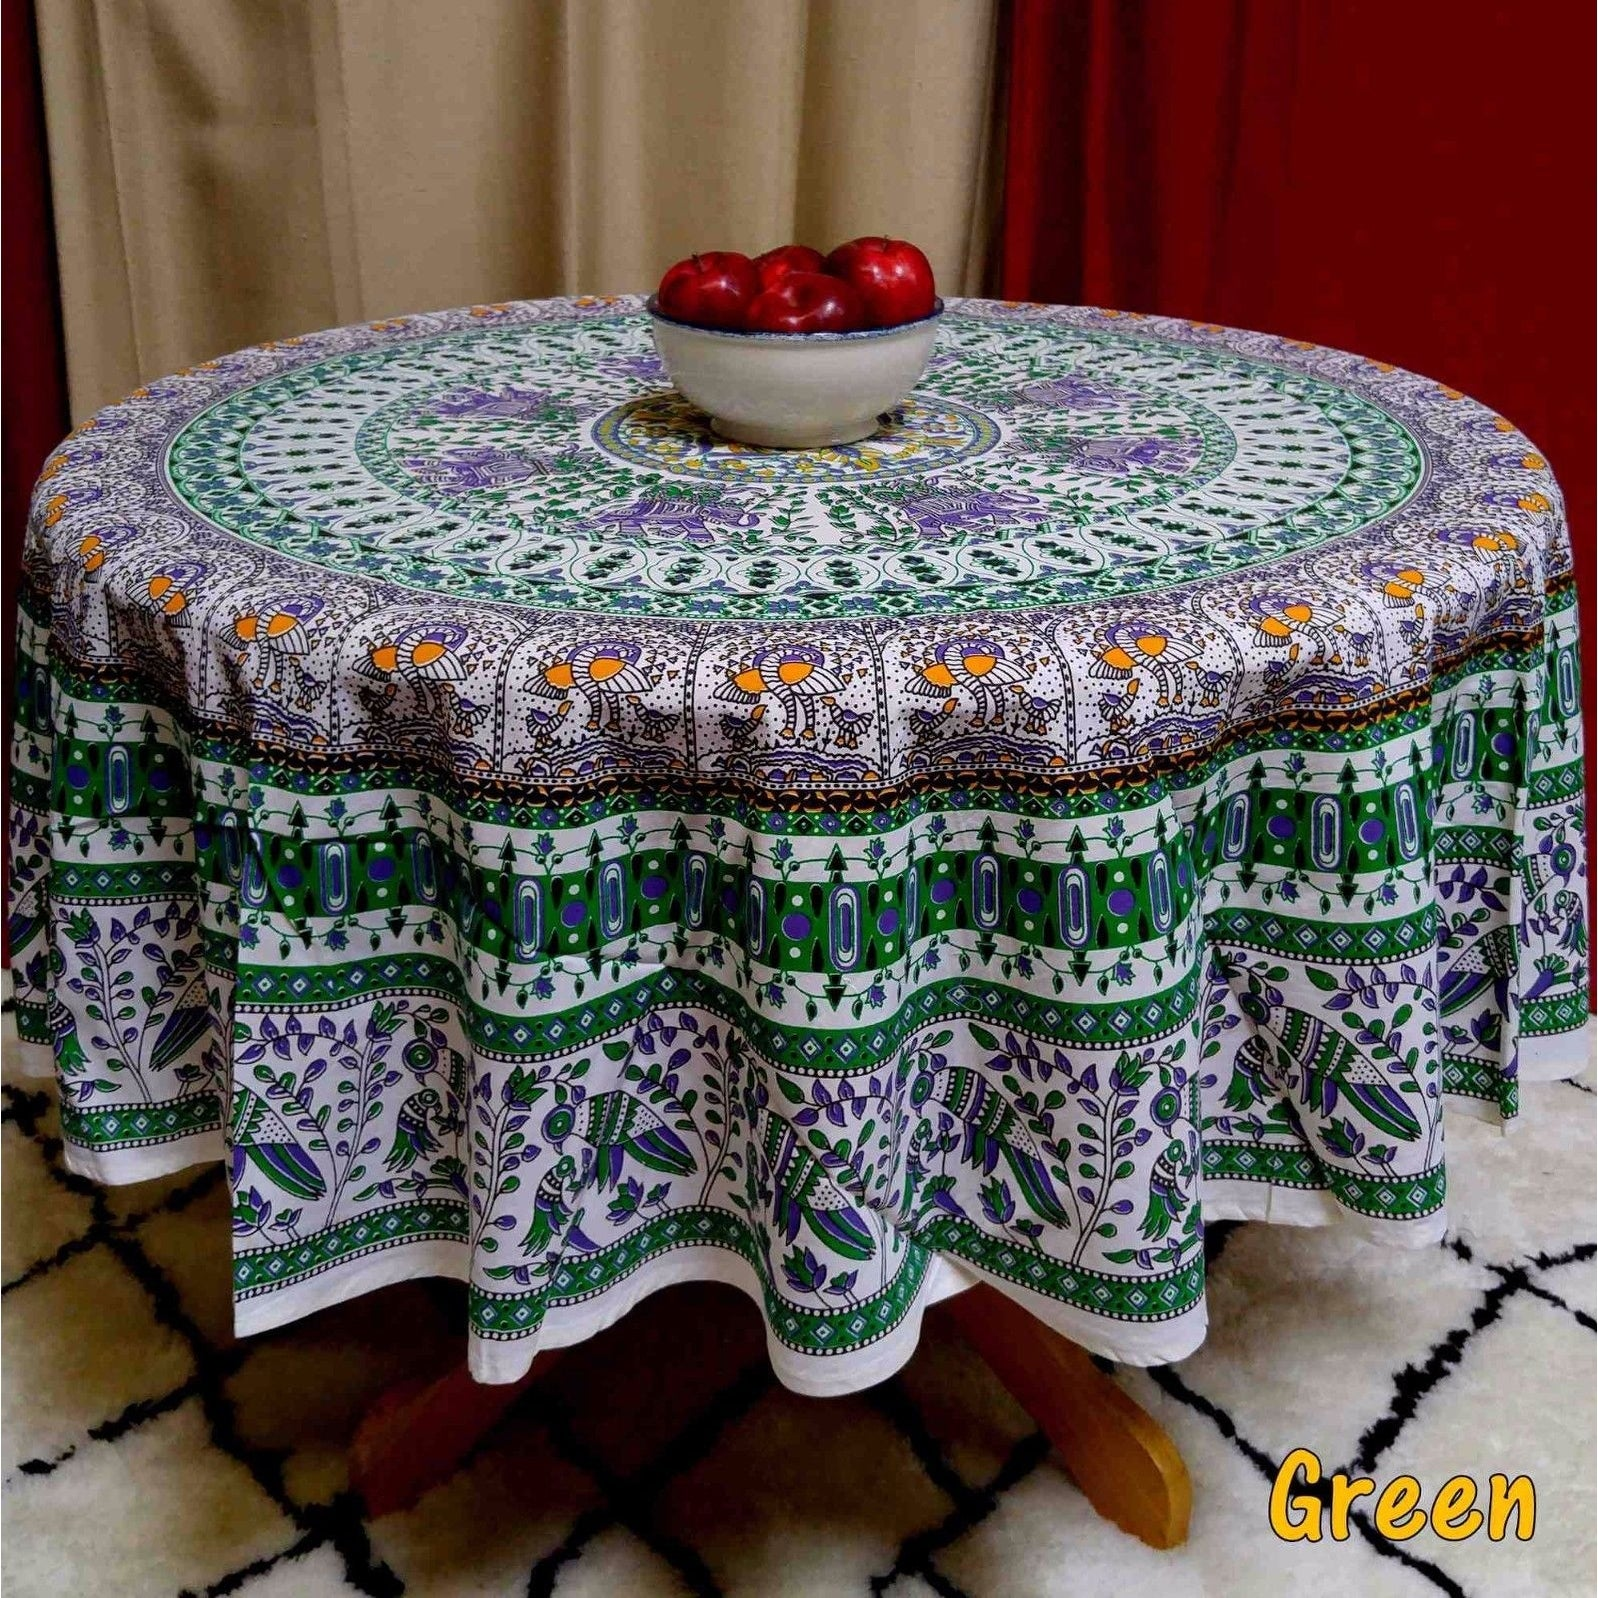 "Handmade Elephant and Peacock Print 100% Cotton Tablecloth 69"" Round Blue Green Red Teal - Thumbnail 7"